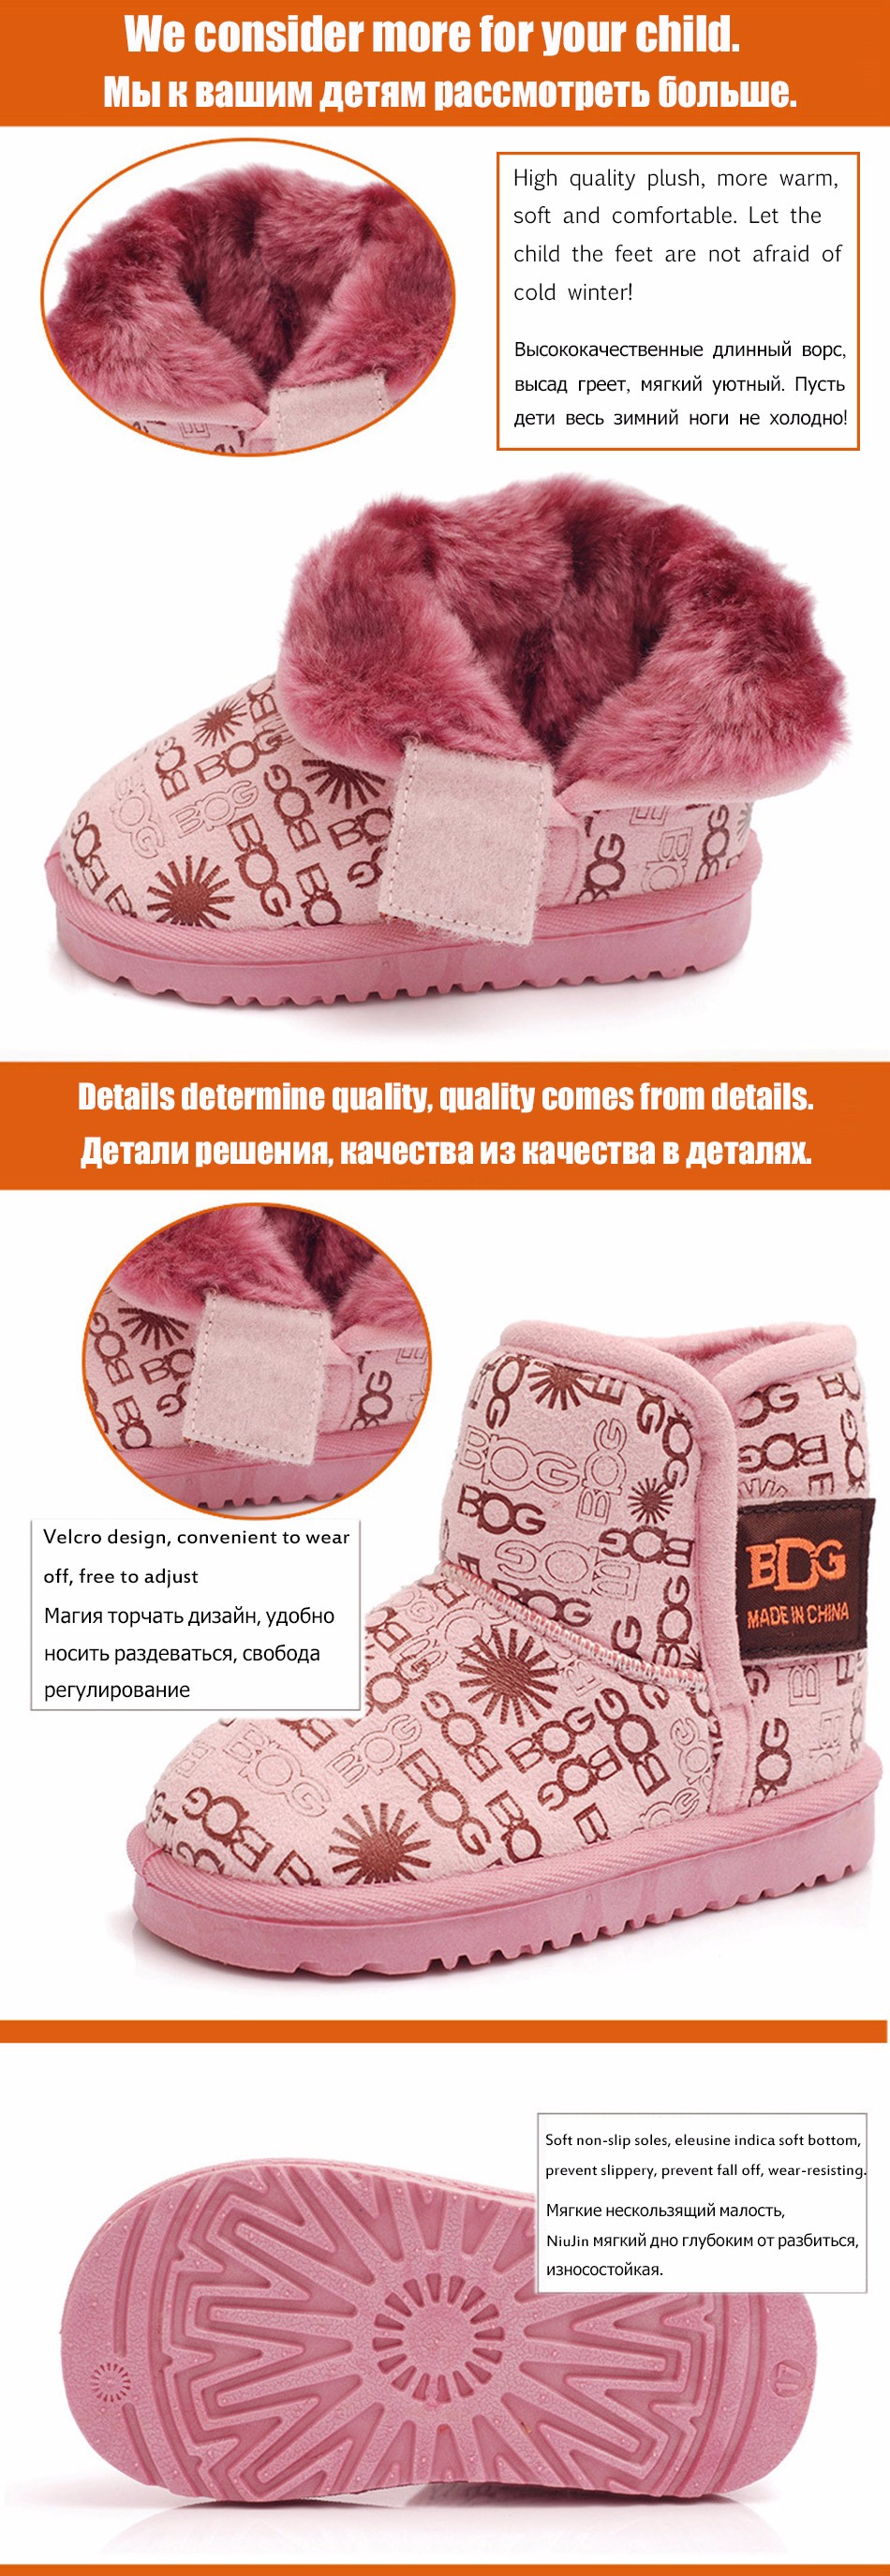 Girls Boots ugs Kids Boots Thick Warm Shoes Cotton-Padded Suede Buckle Boys Girls Boots ugs kids Snow Boots Shoes Waterproof